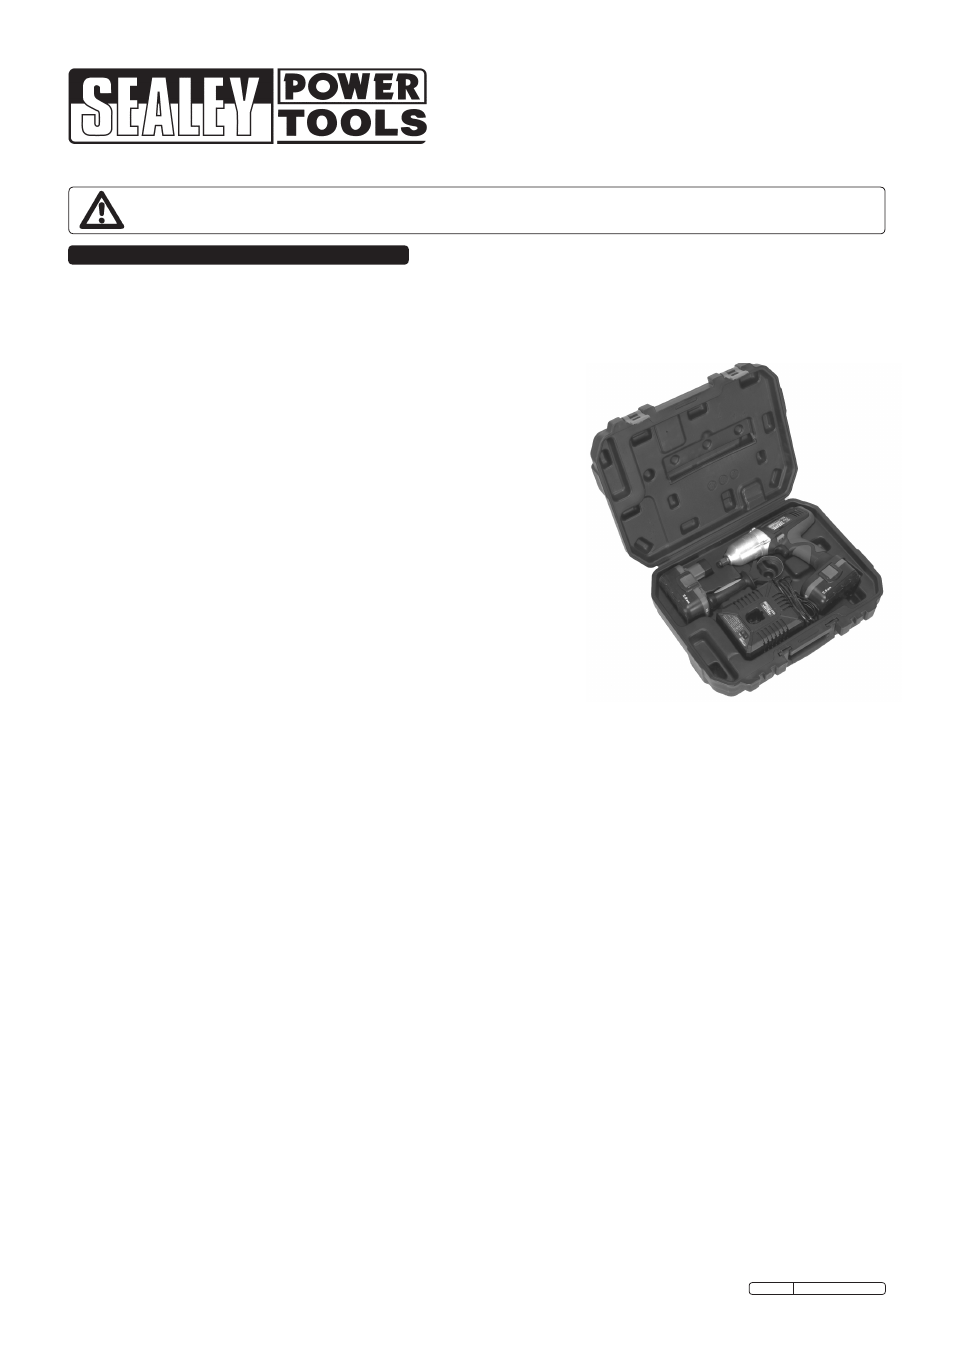 Sealey Cp1950 User Manual 3 Pages Always Plug Power Tools Into A Rcb Circuit Breaker As Safety Background Image